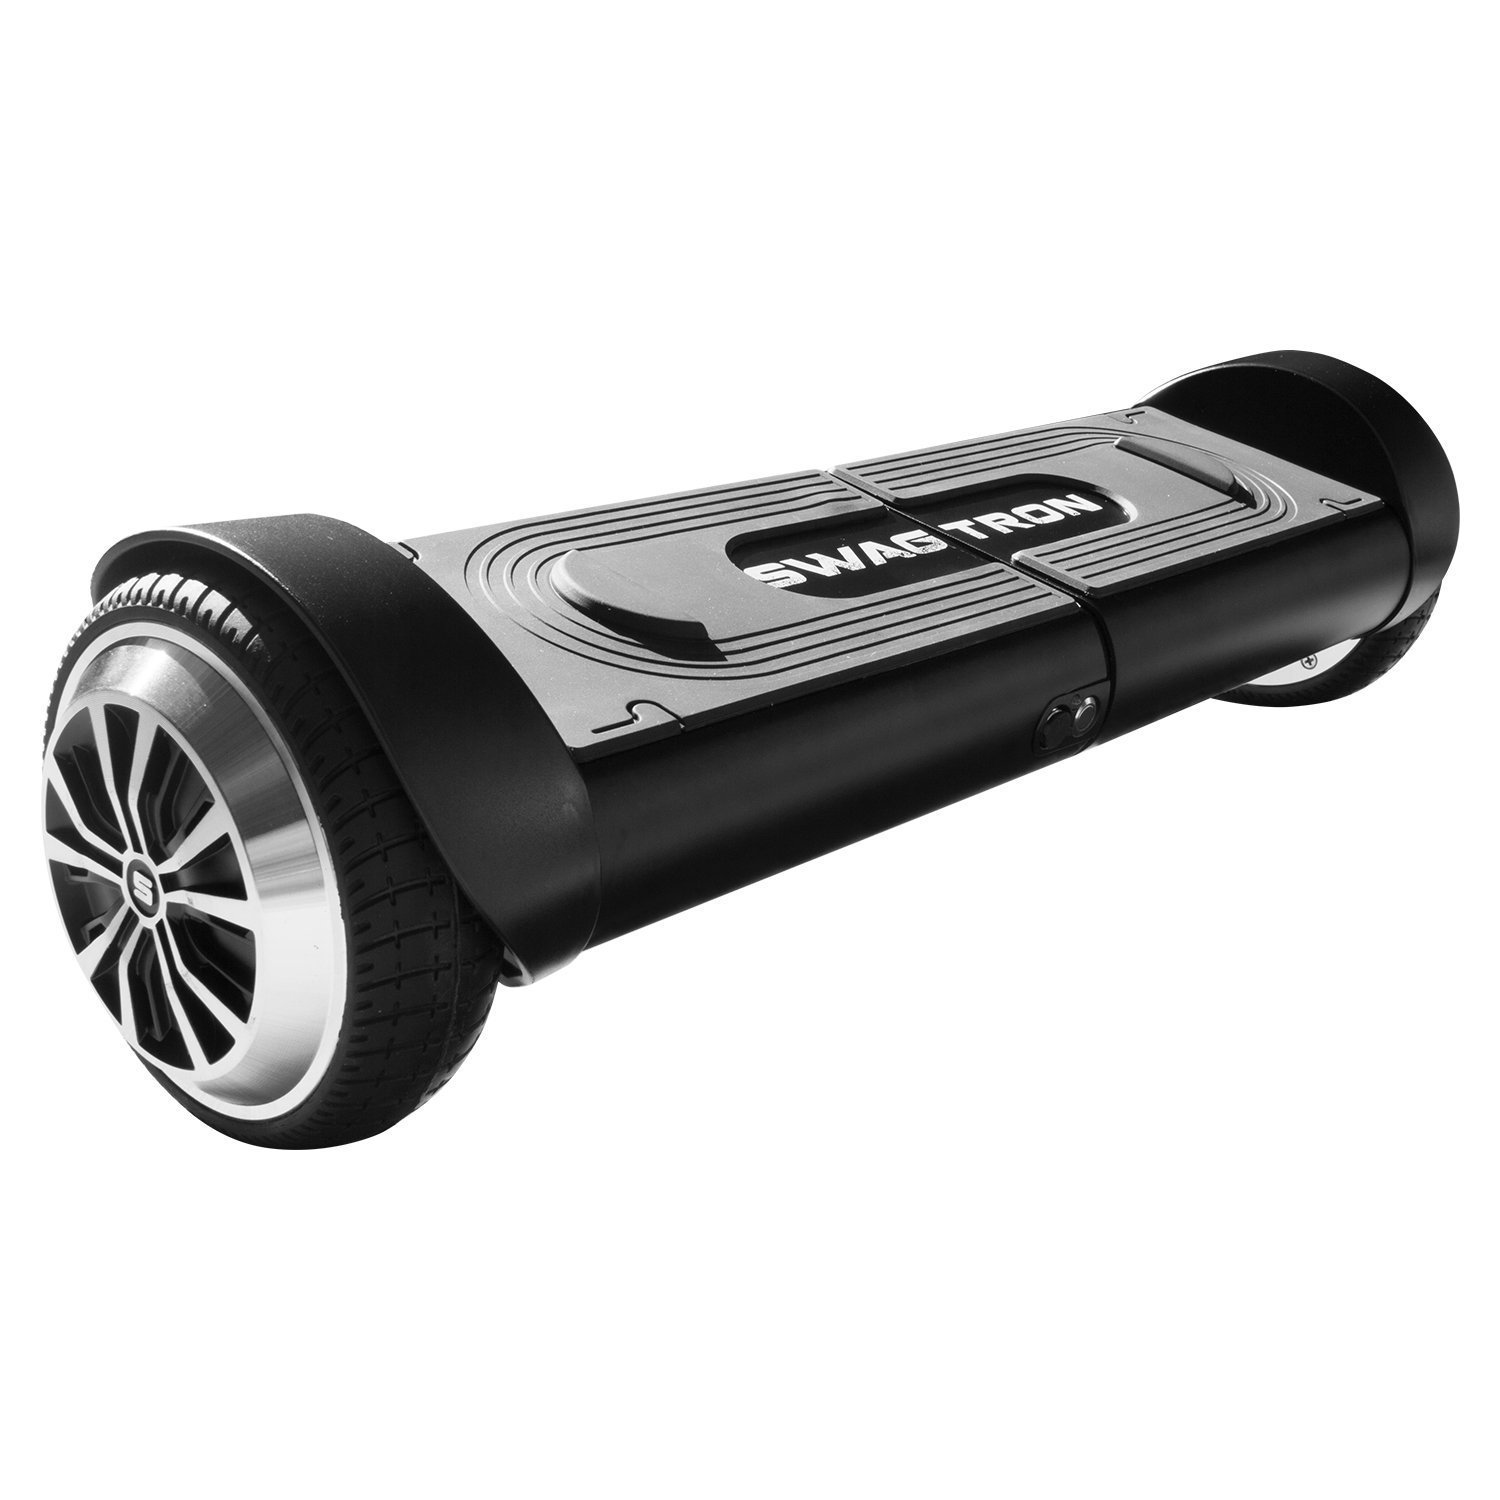 Swagtron T8 Lithium-Free Hoverboard Startup Self Balancing & Durable Metal Casing Supports Up To 200 Lbs UL2272 Battery (Black)